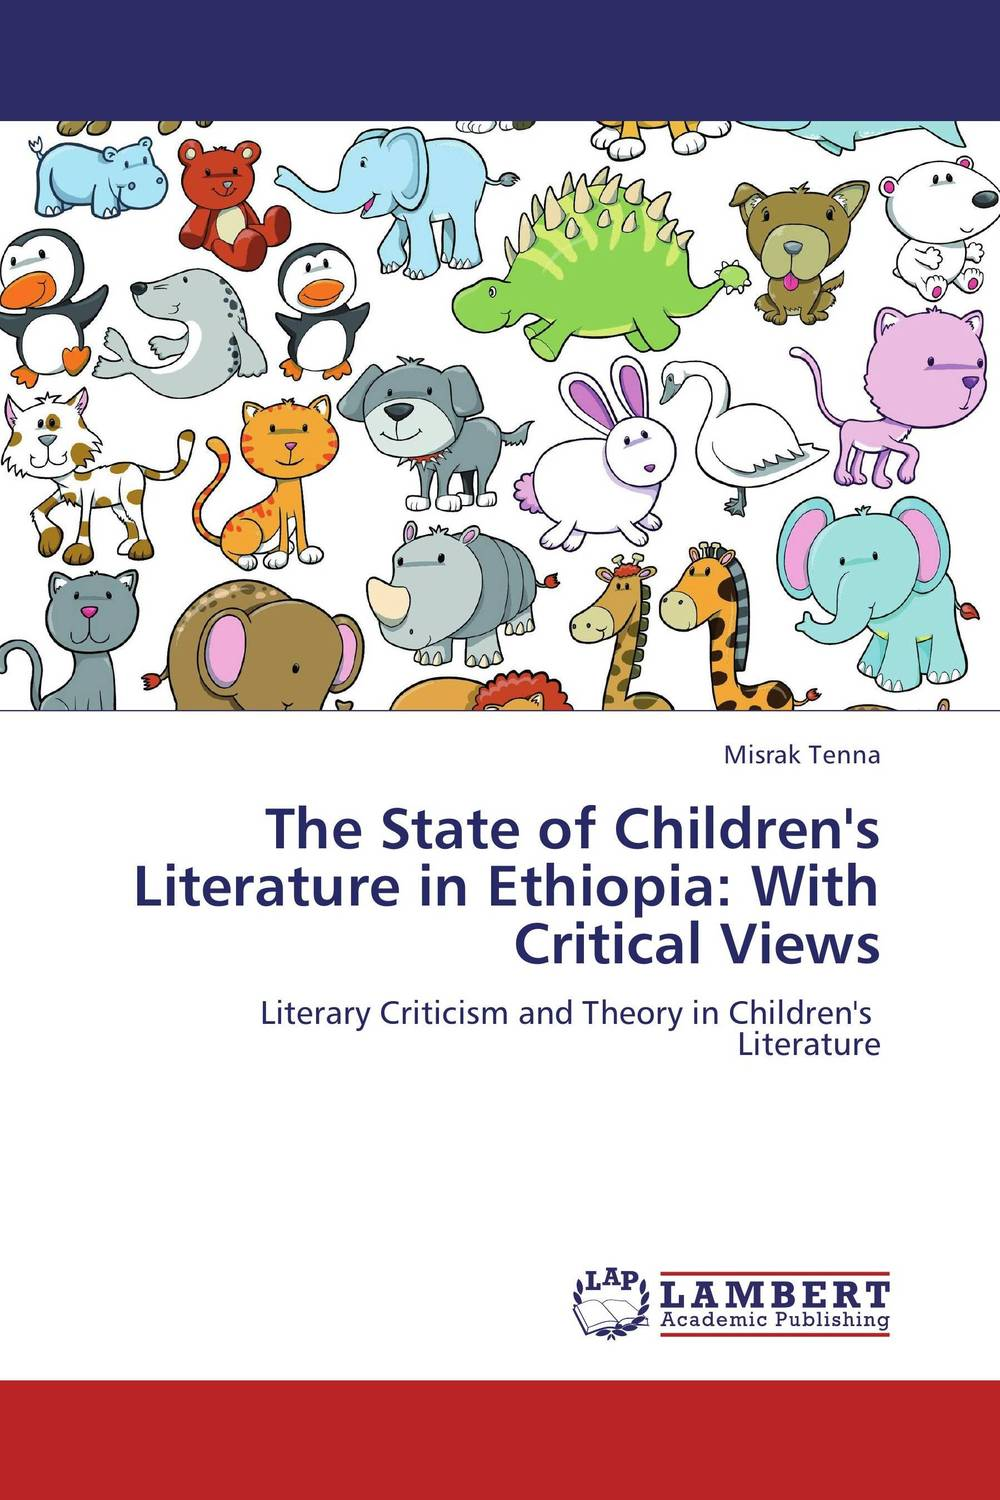 The State of Children's Literature in Ethiopia: With Critical Views epilepsy in children psychological concerns